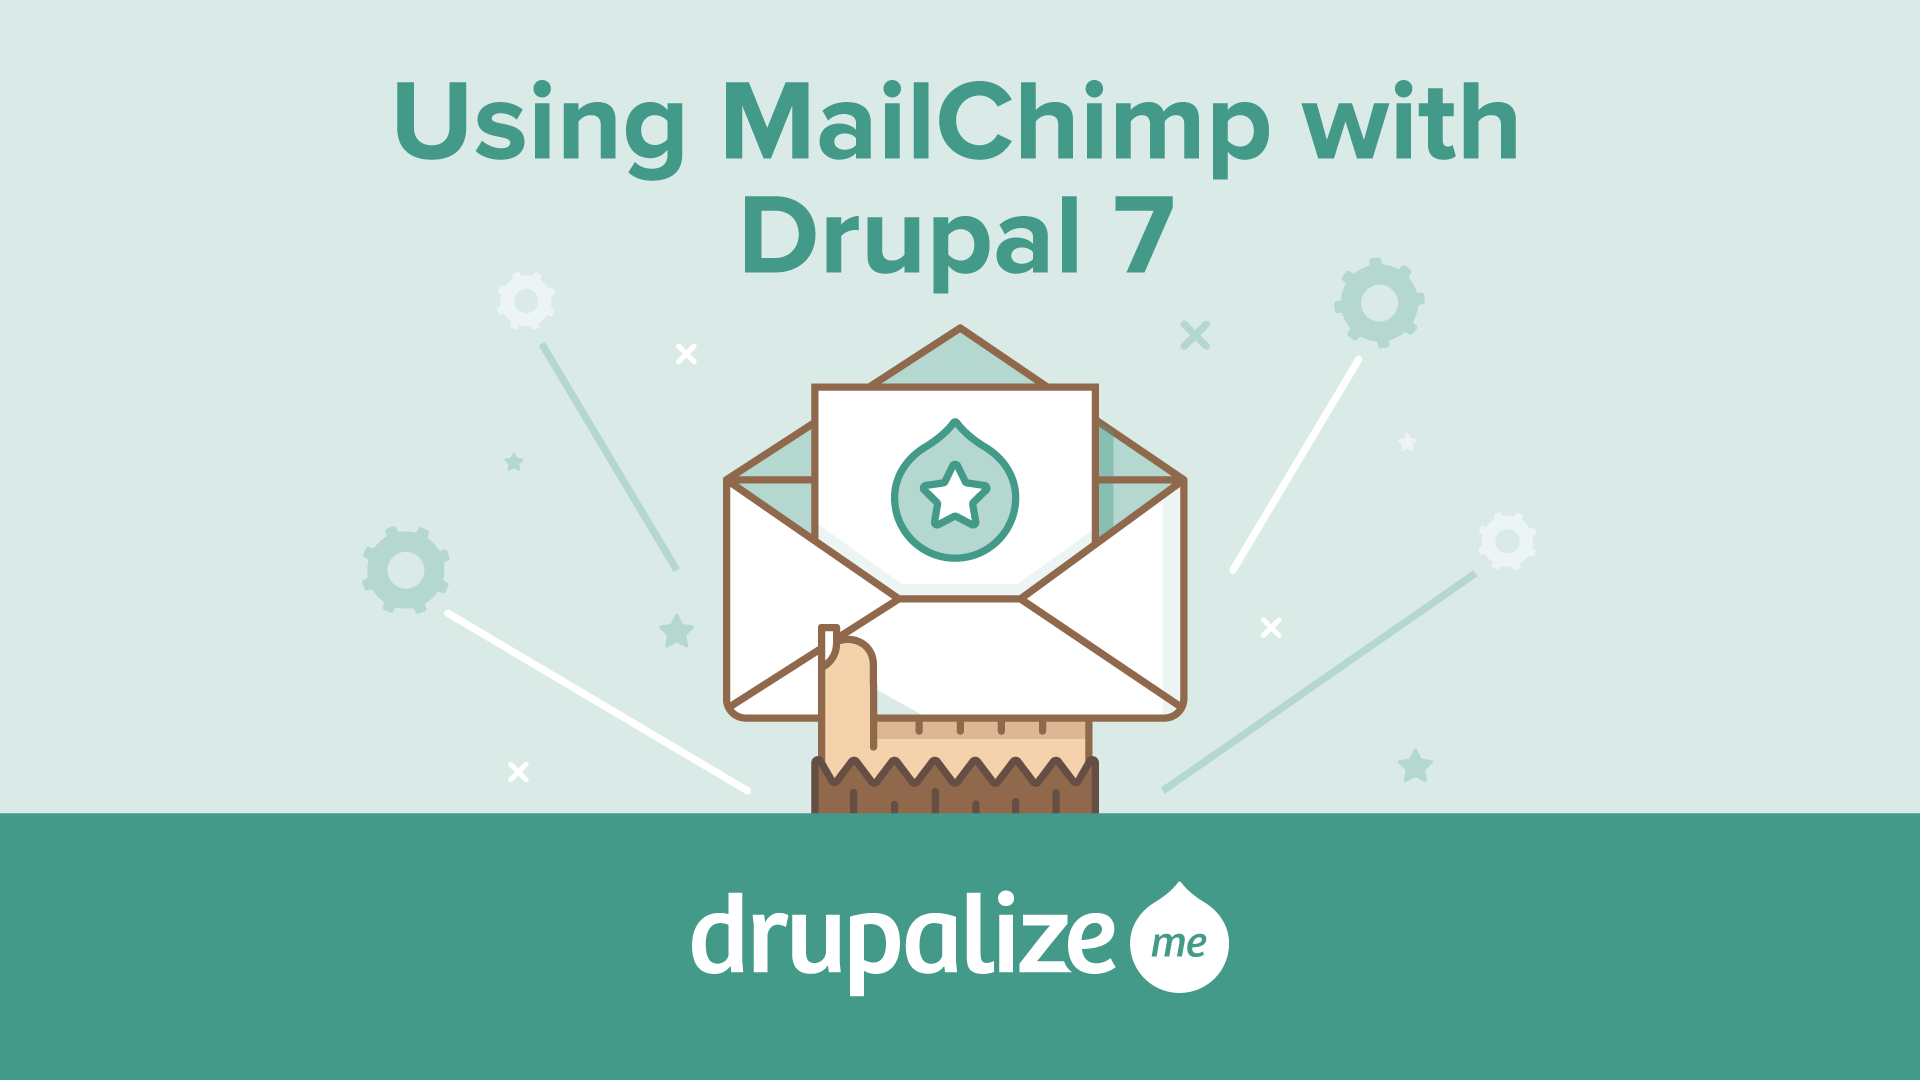 Using MailChimp with Drupal 7